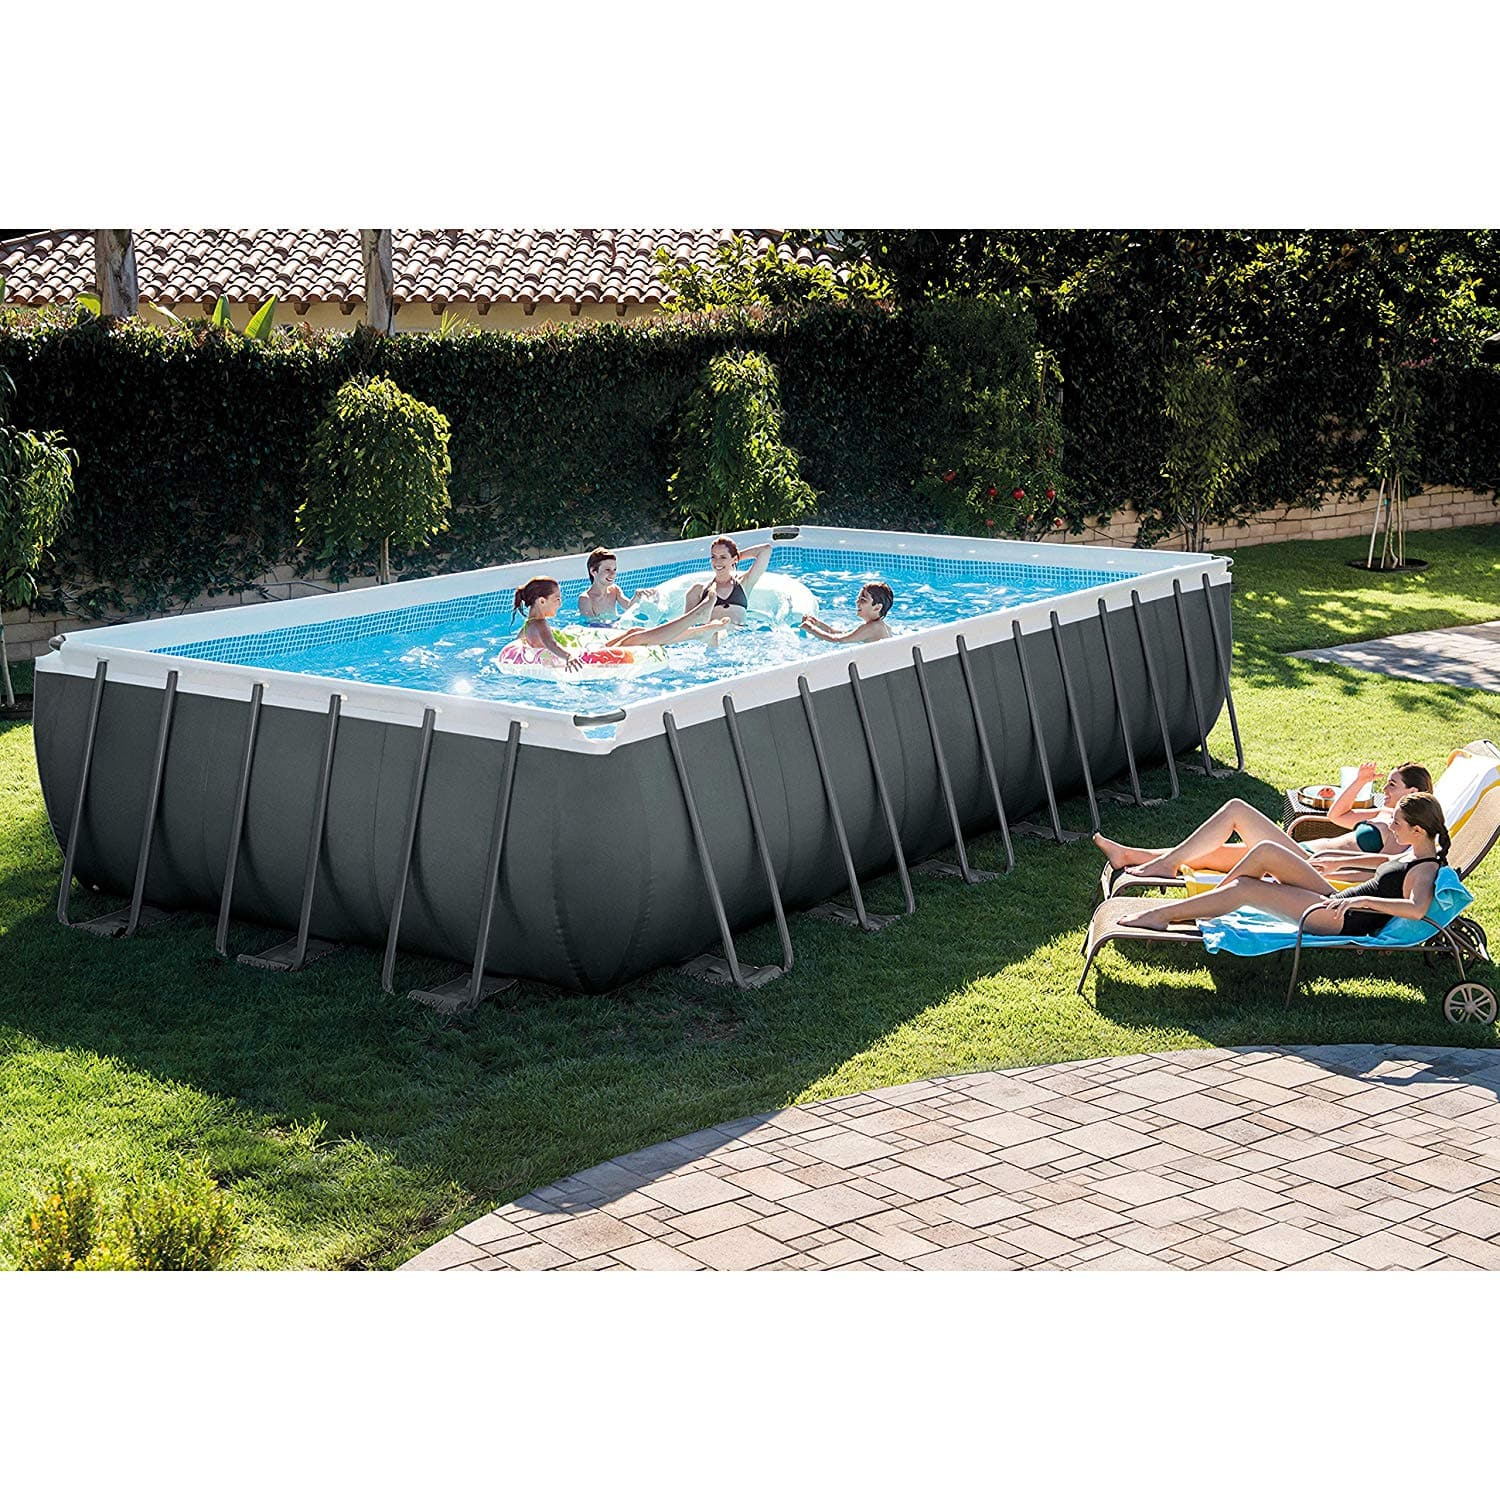 Jacuzzi Pool Covers Intex 24ft X 12ft X 52in Ultra Xtr Rectangular Pool Set With Sand